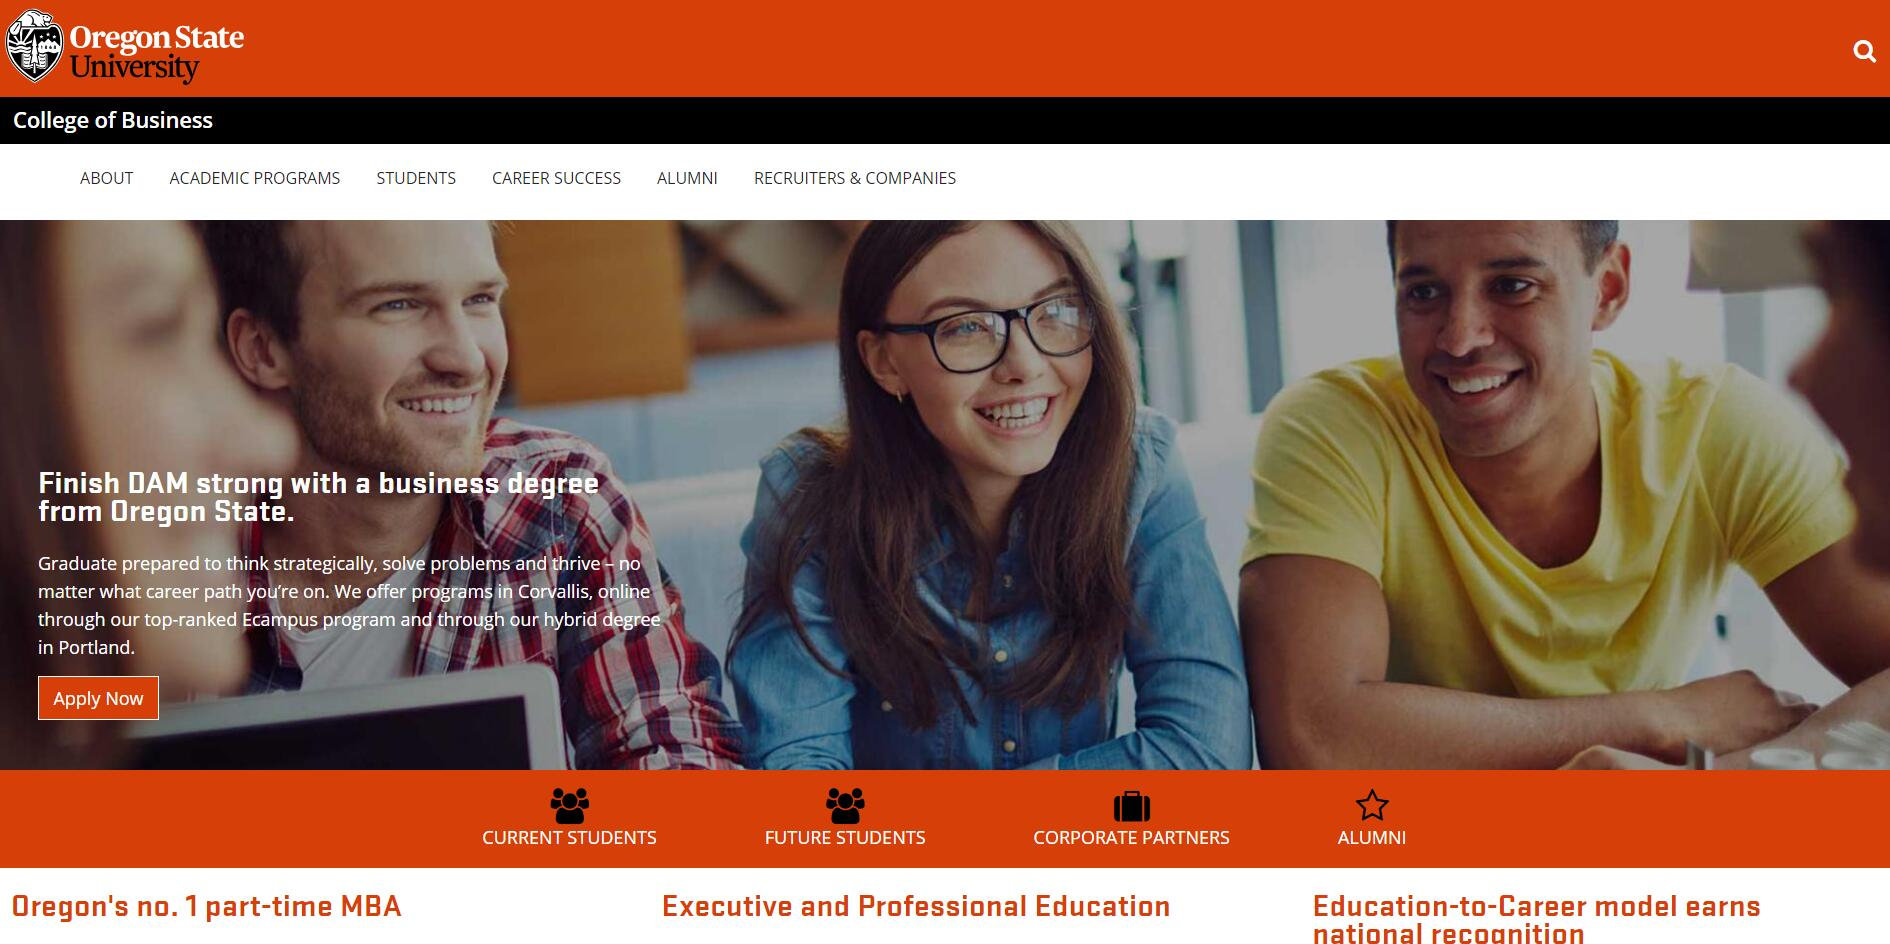 The College of Business at Oregon State University